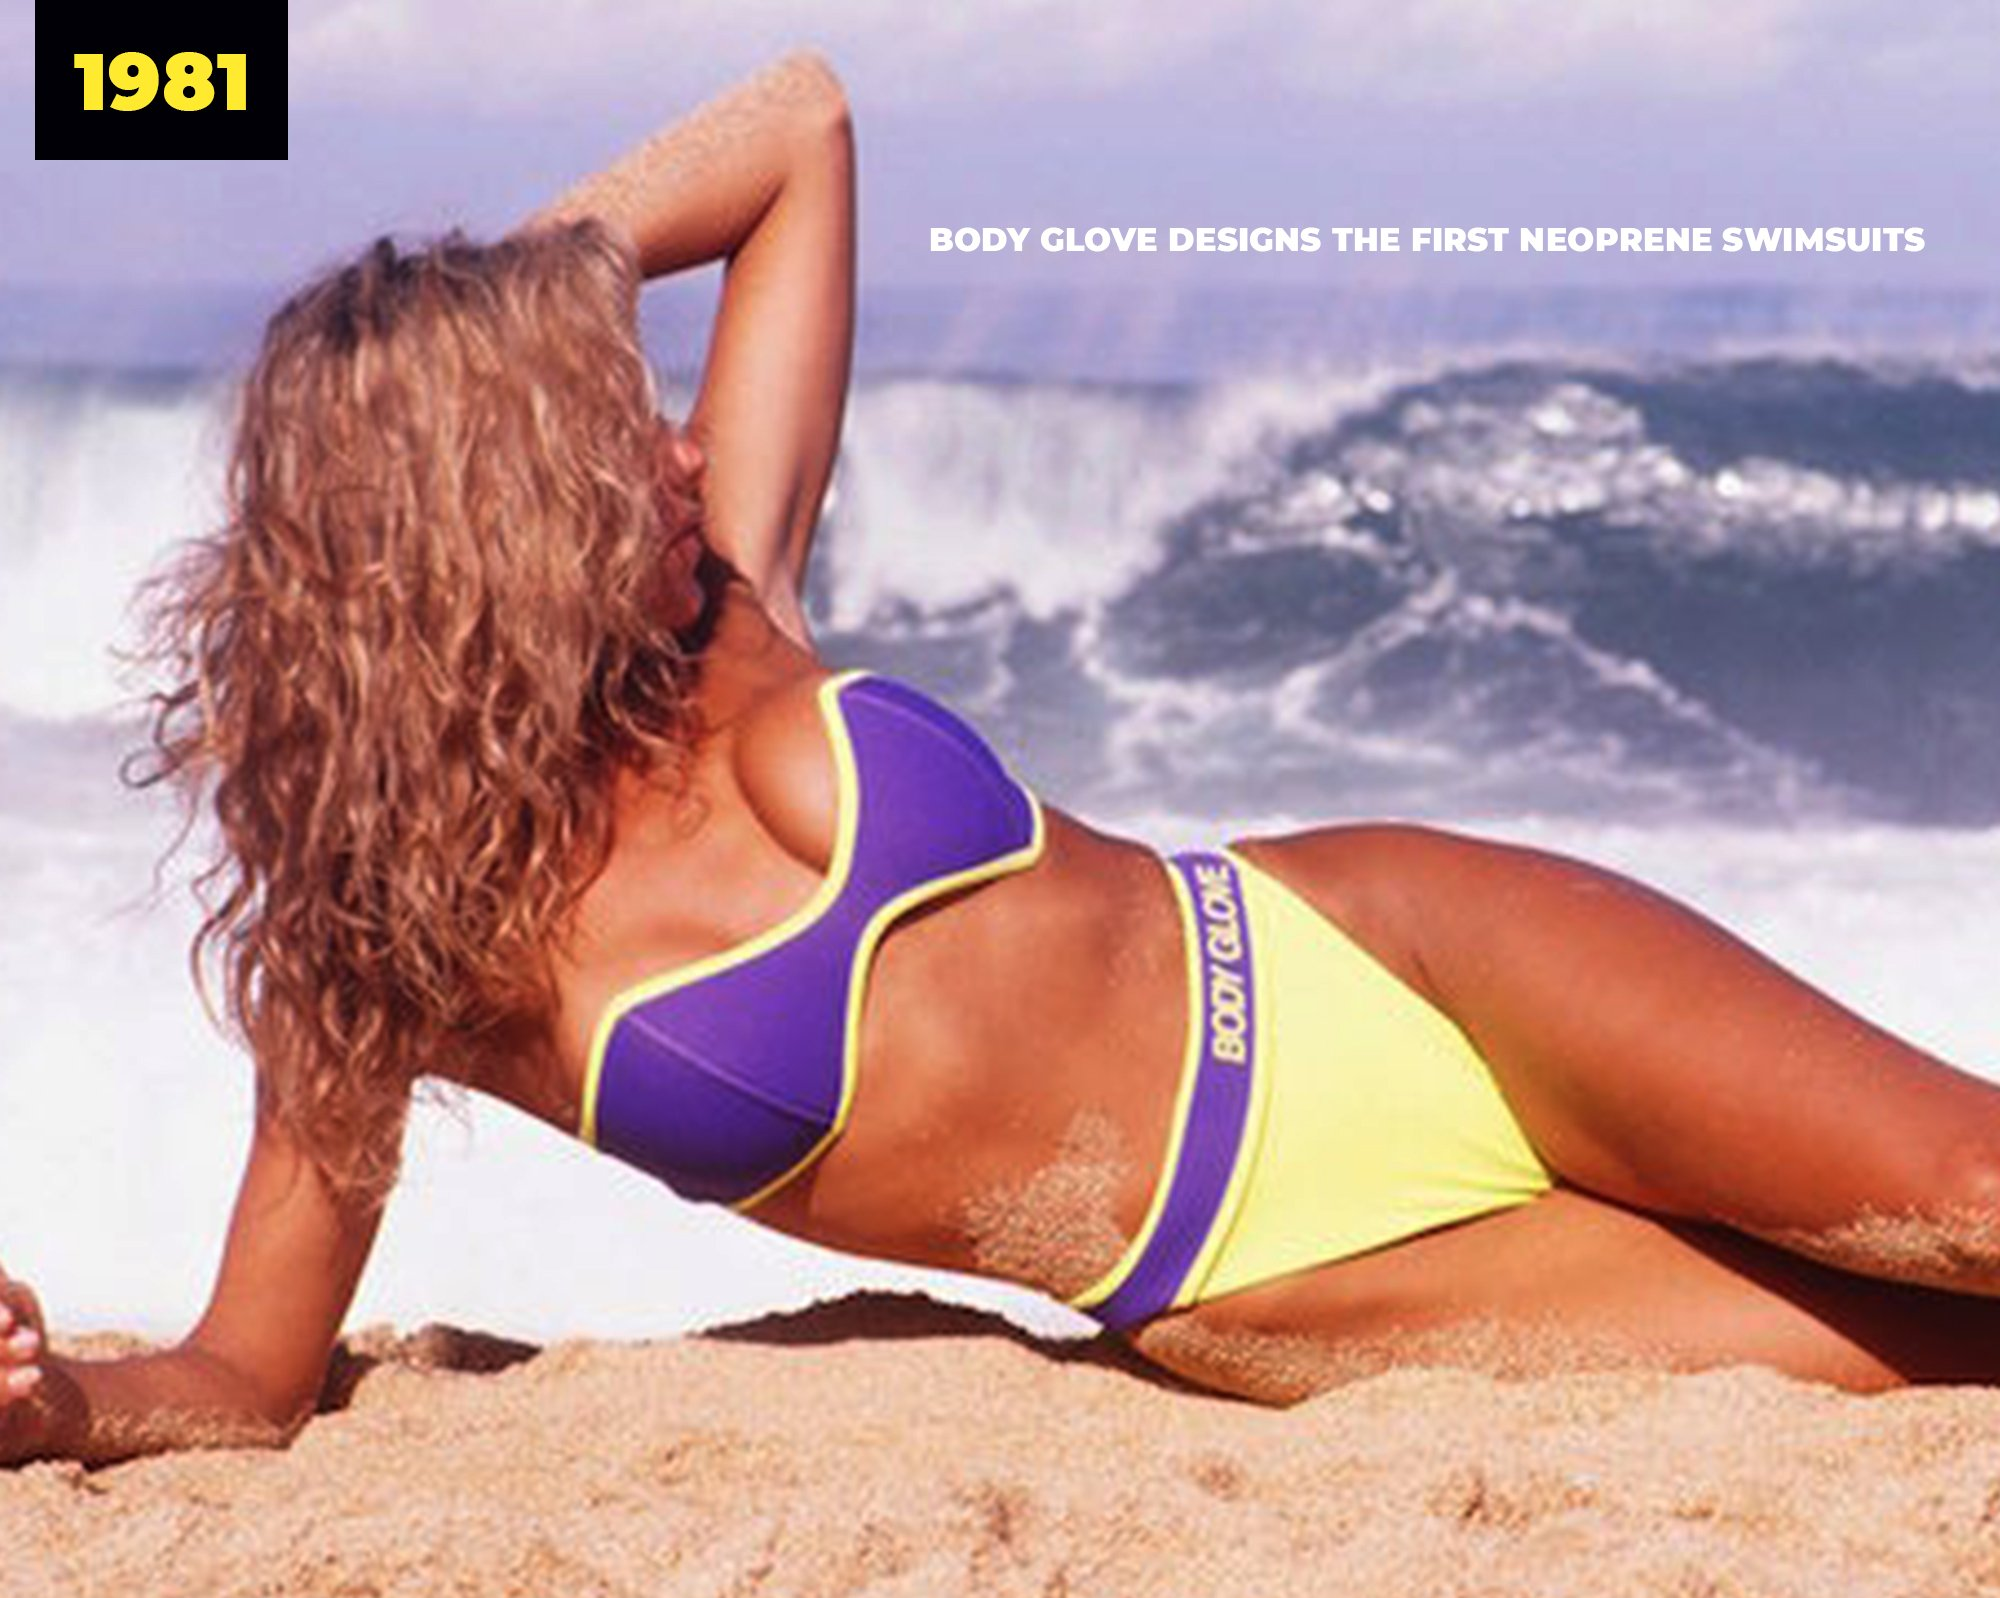 1981 | Body Glove designs the first neoprene swimsuits